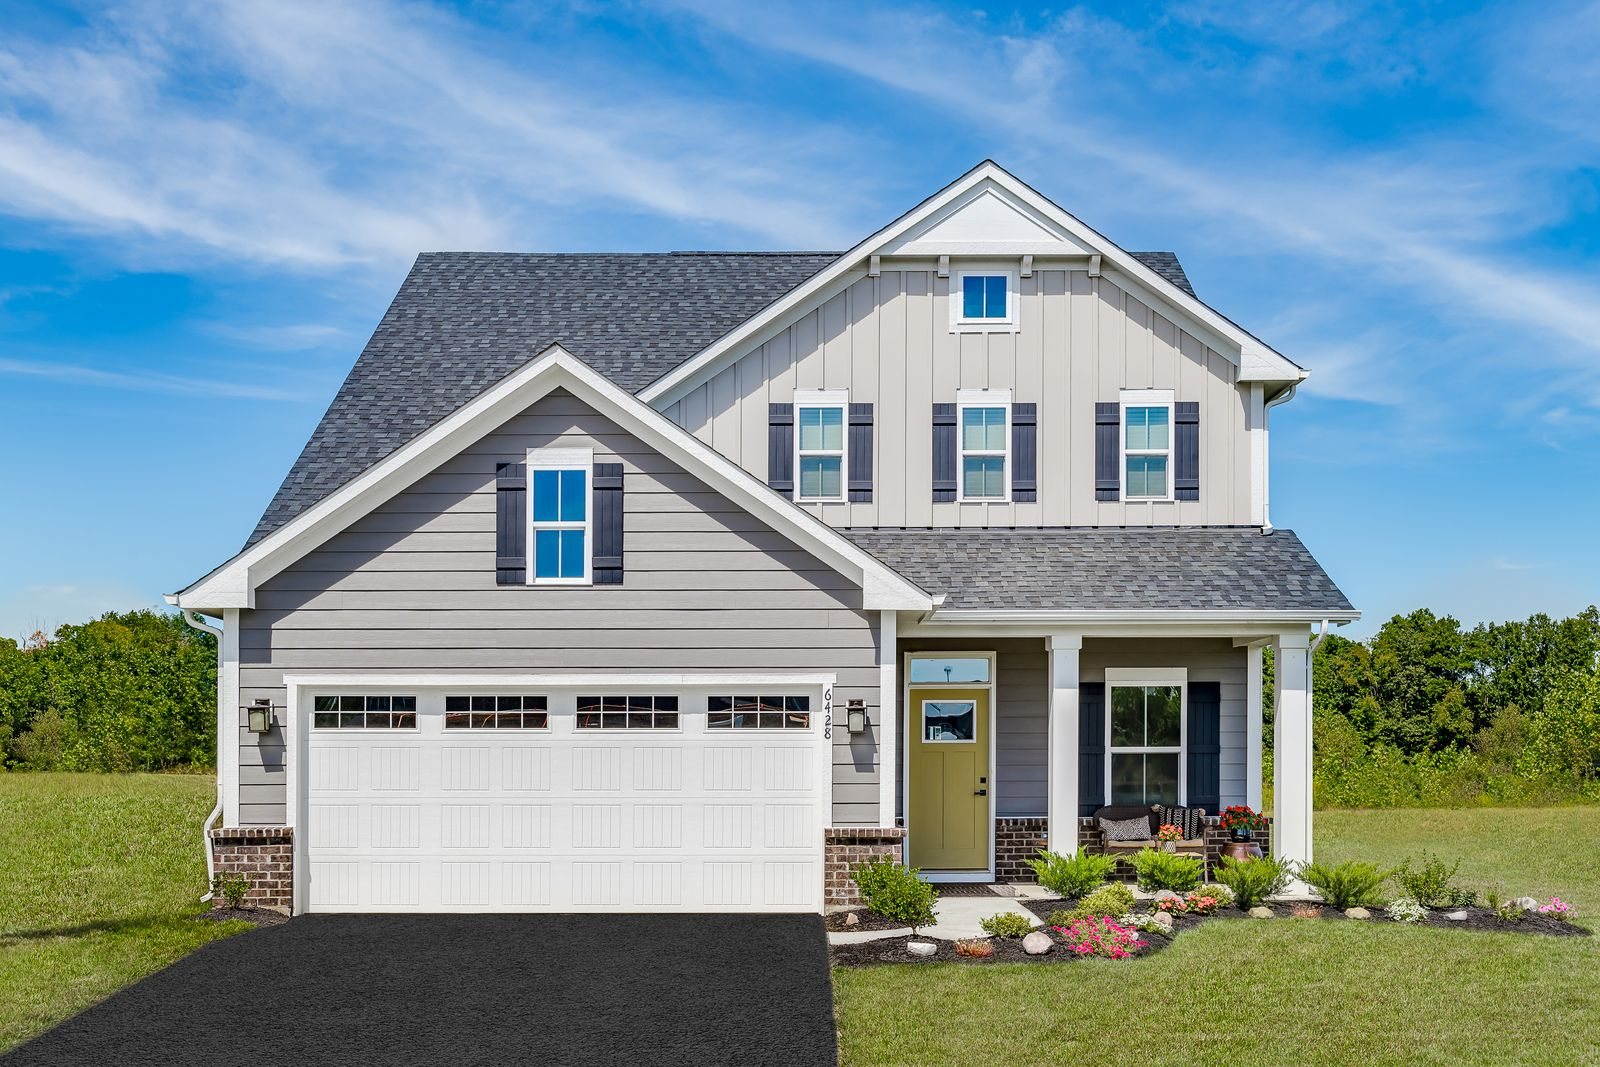 Welcome Home to Bethel Pines:The only new homes in Bethel Park Schools, with just 19 homes. Minutes to T-Station, Cool Springs, & shopping.Click hereto schedule your visit.